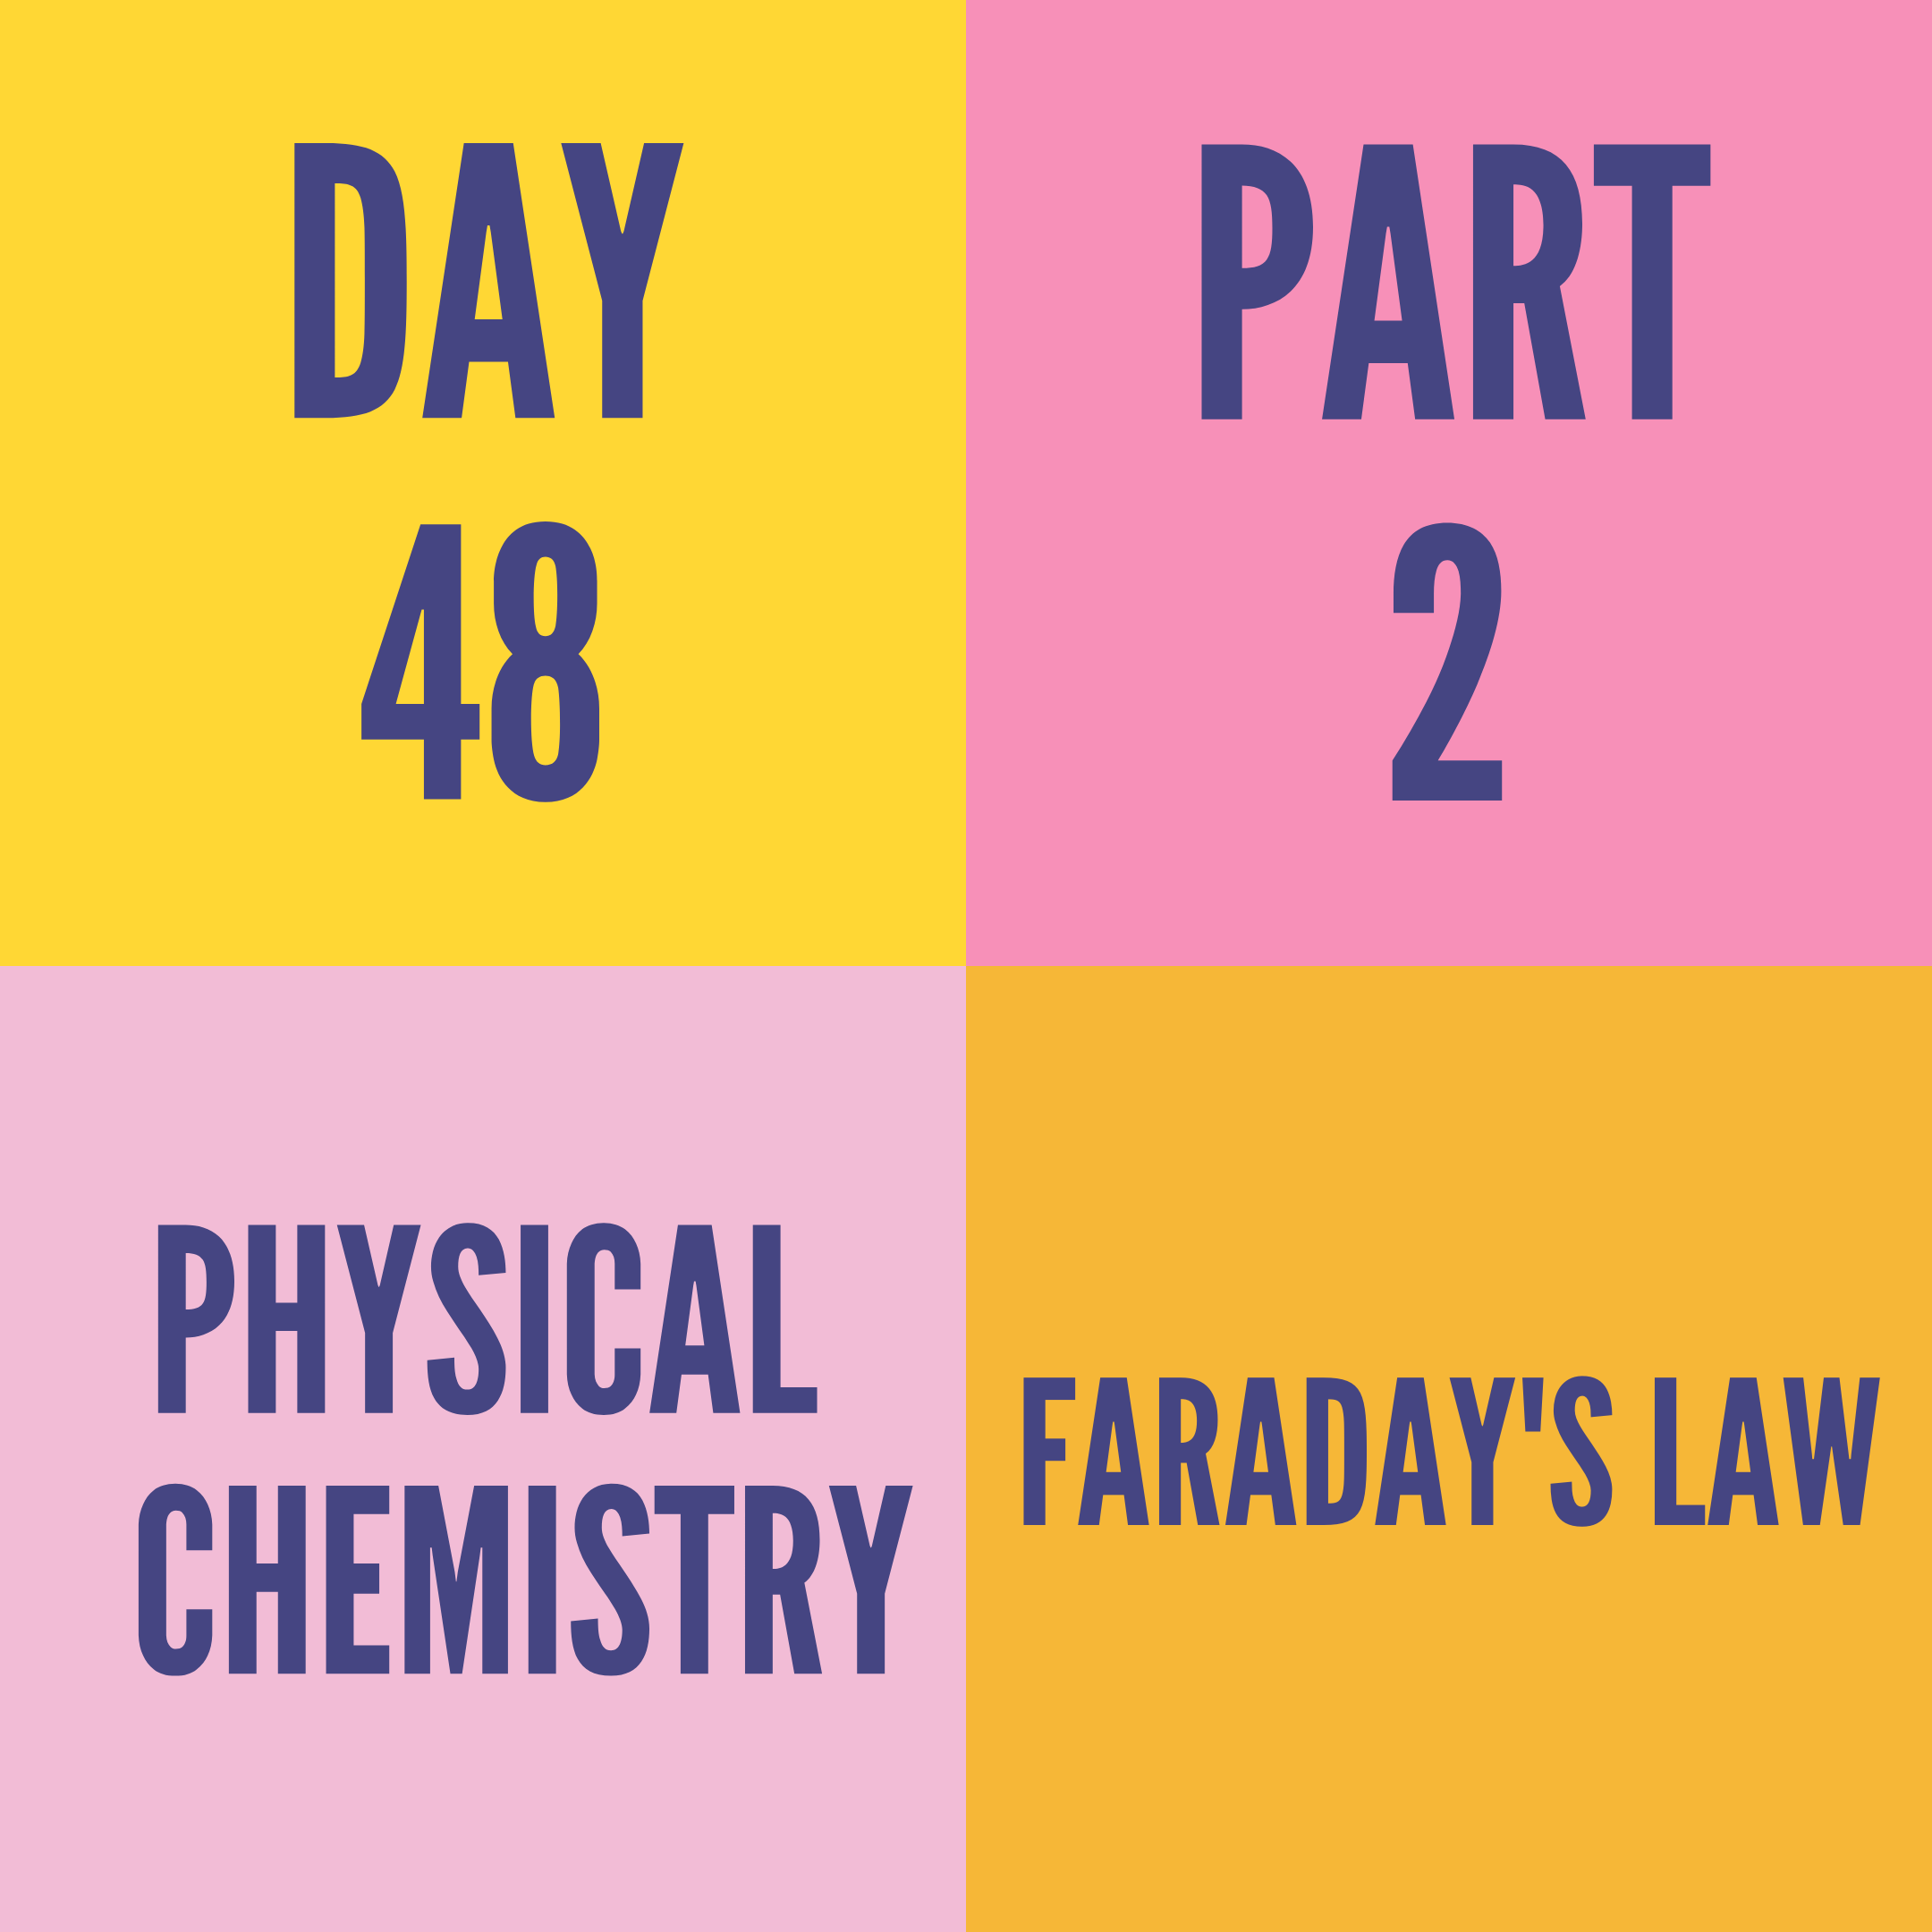 DAY-48 PART-2 FARADAY'S LAW